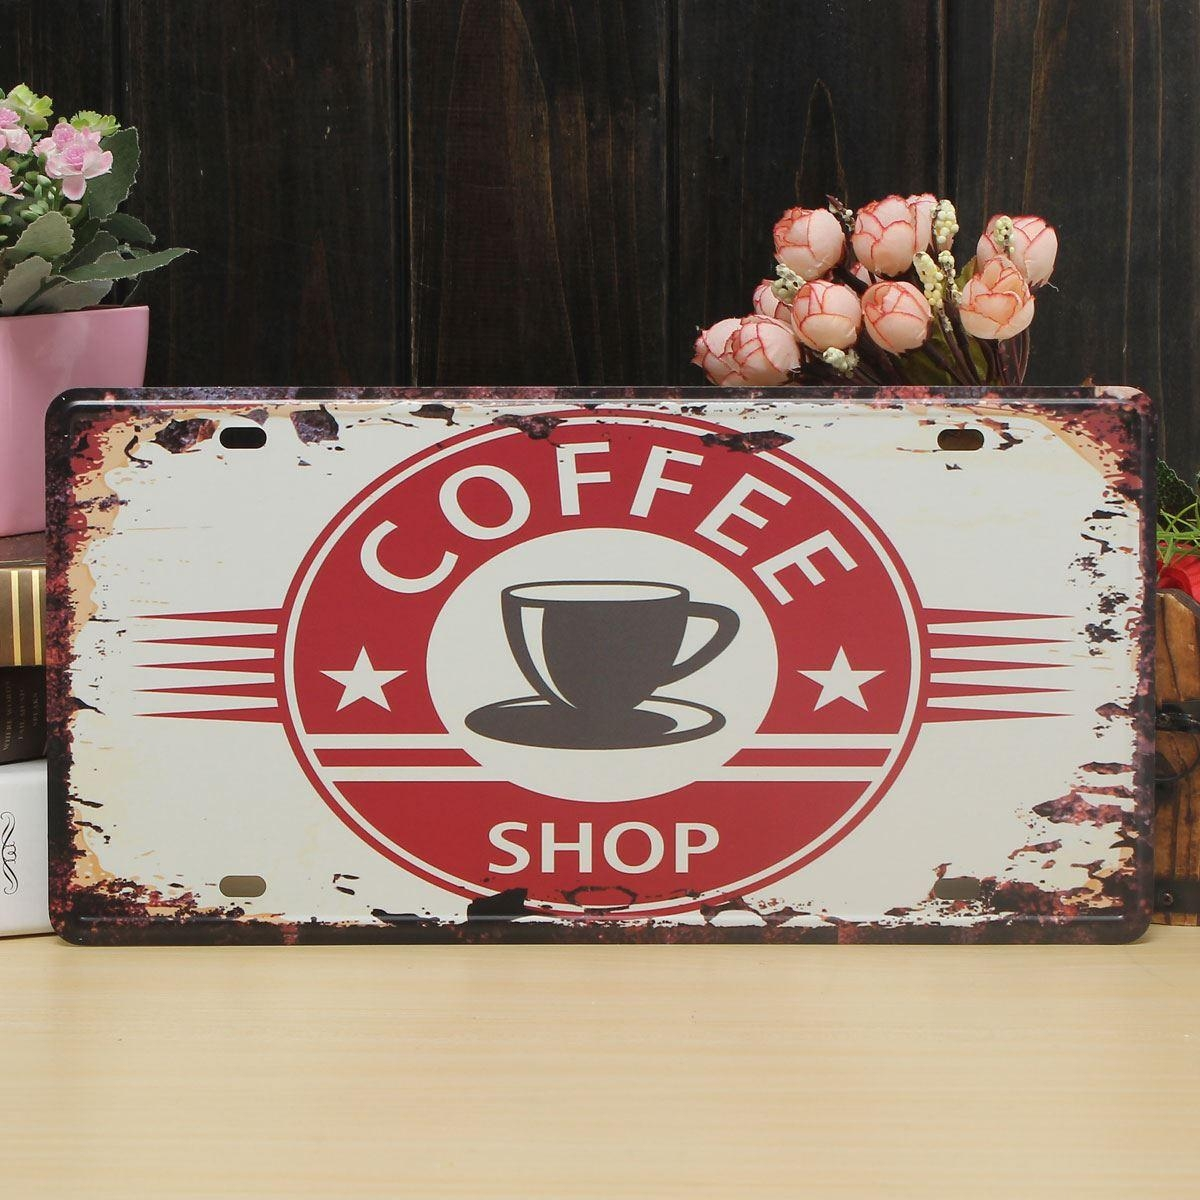 Coffee Theme Vintage Metal Sign The Fresh Brewed Coffee Wall Intended For Coffee Theme Metal Wall Art (View 11 of 20)